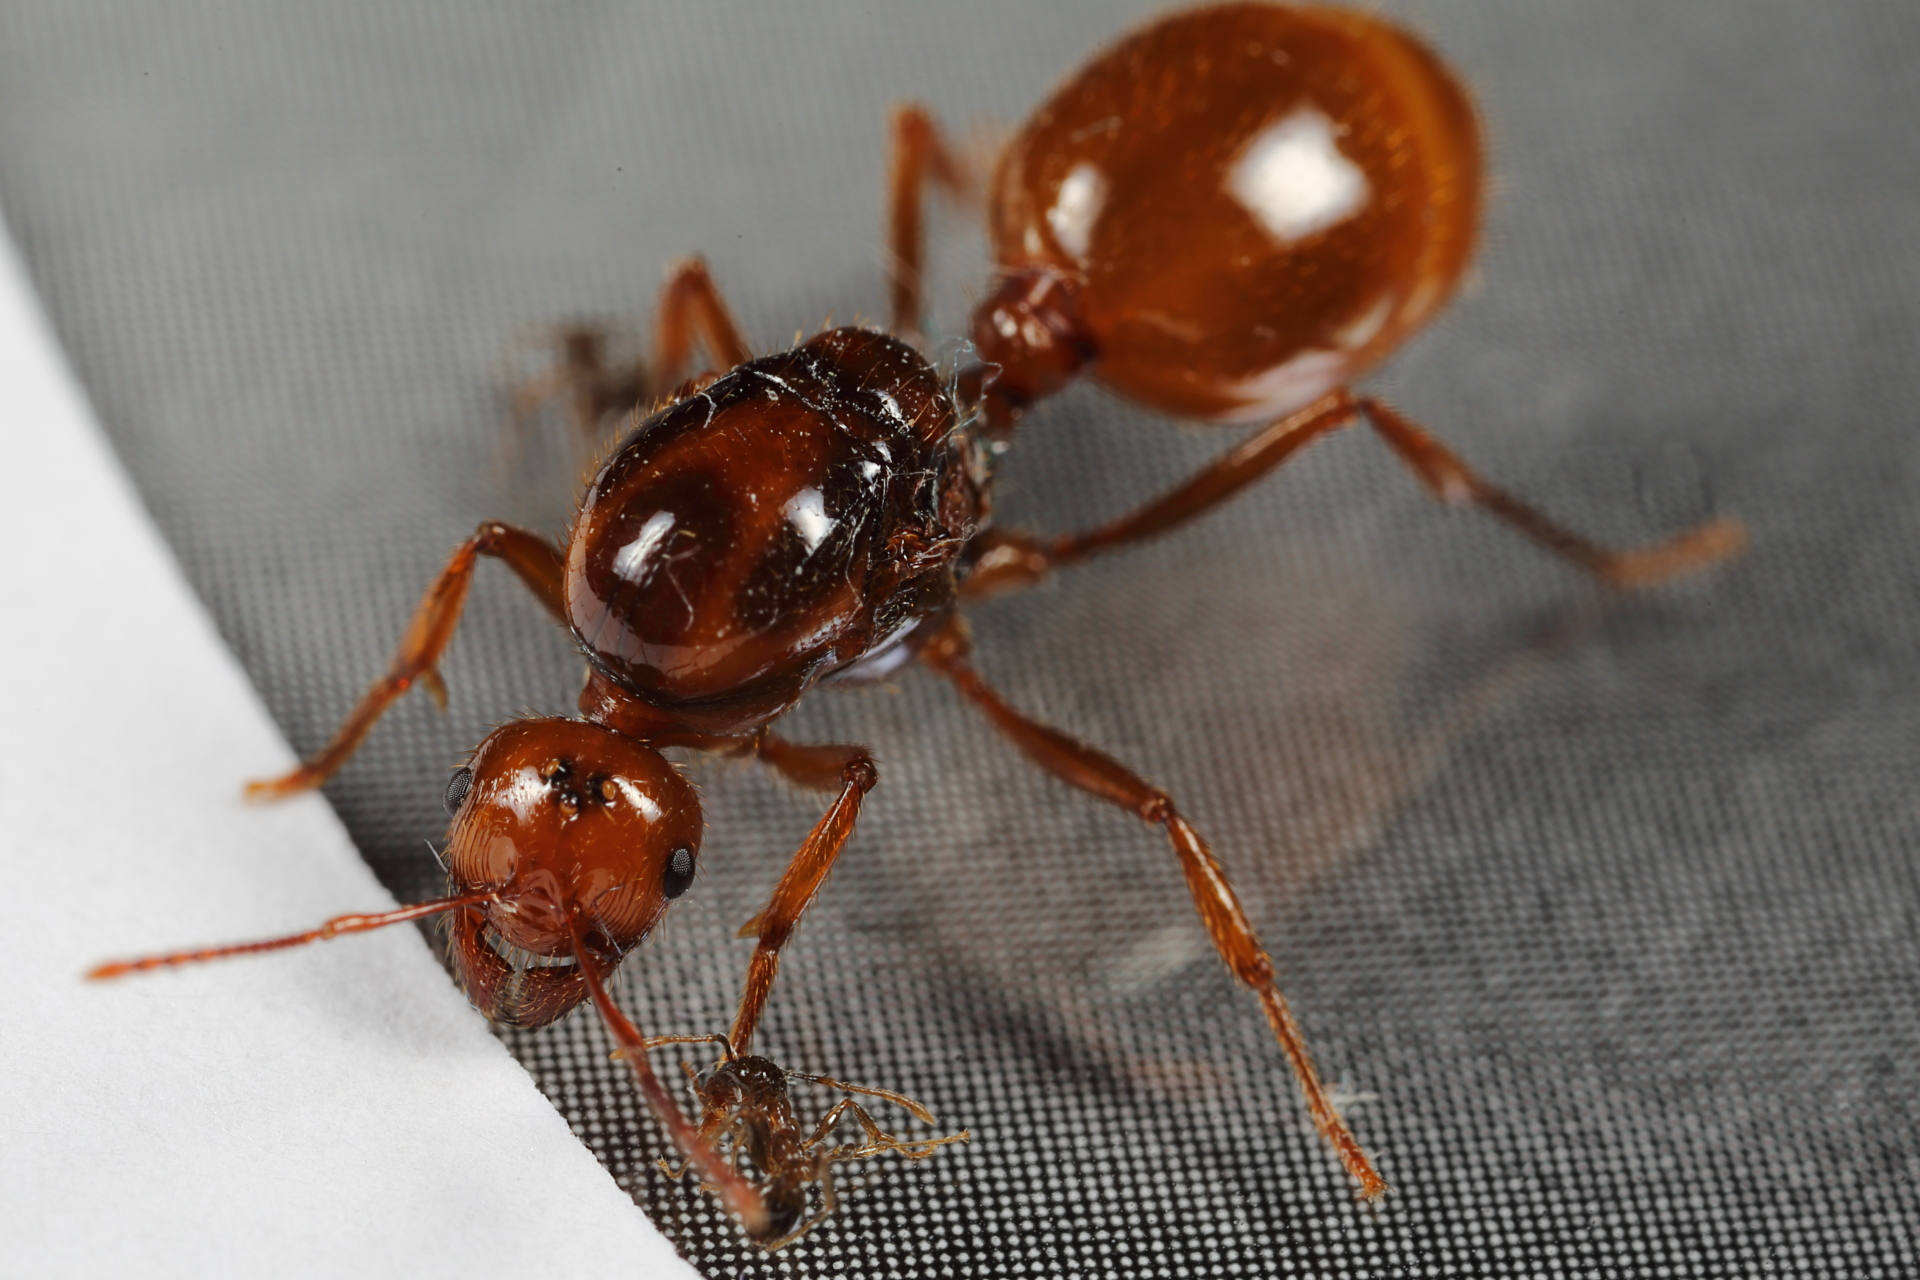 Carpenter Ant Queen photo